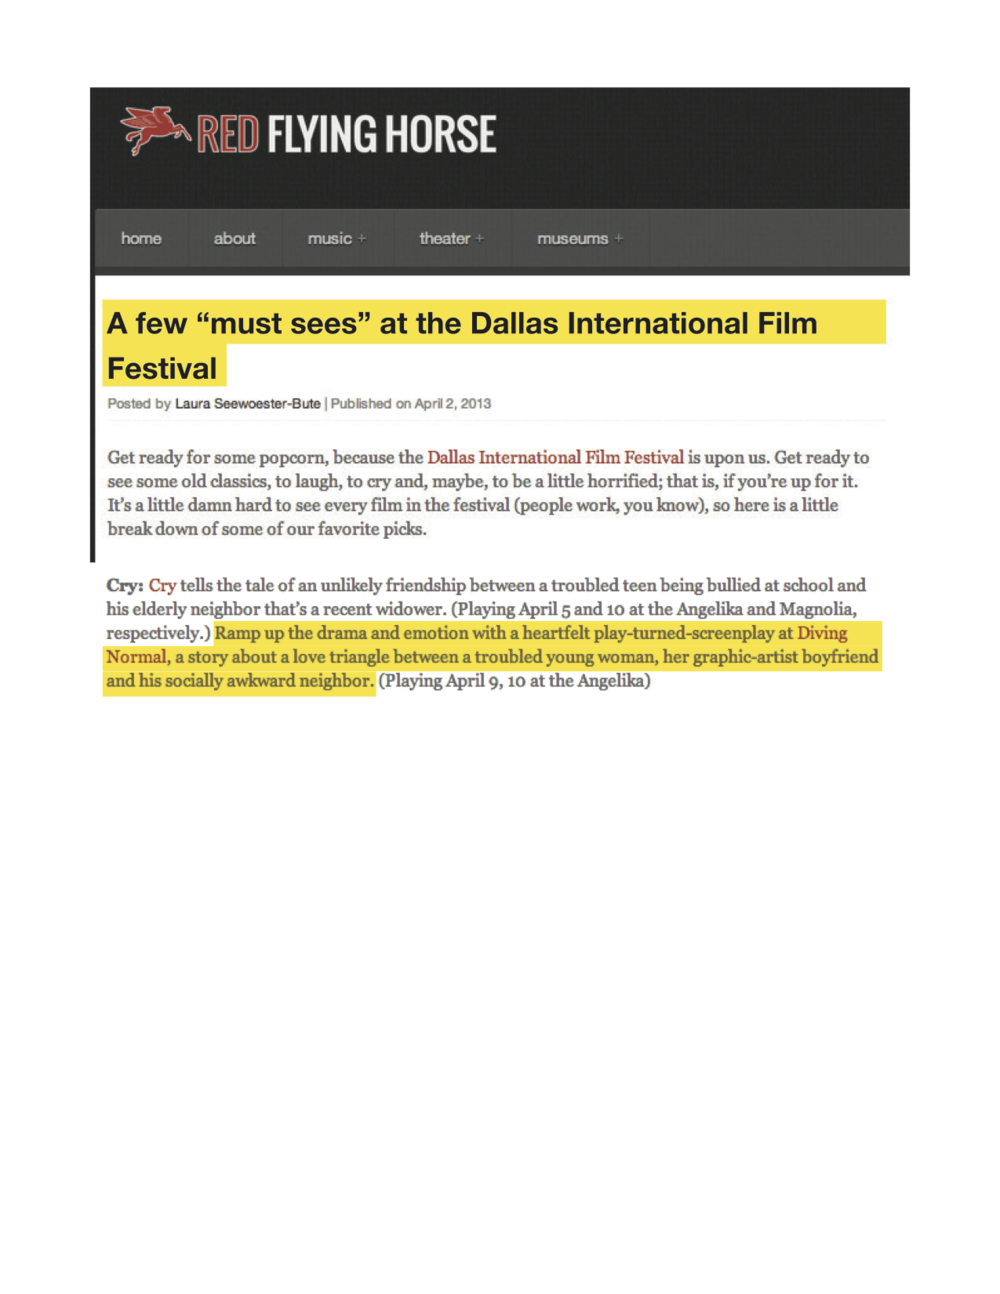 """Red Flying Horse: """"A few 'must sees' at the Dallas International Film Festival"""""""